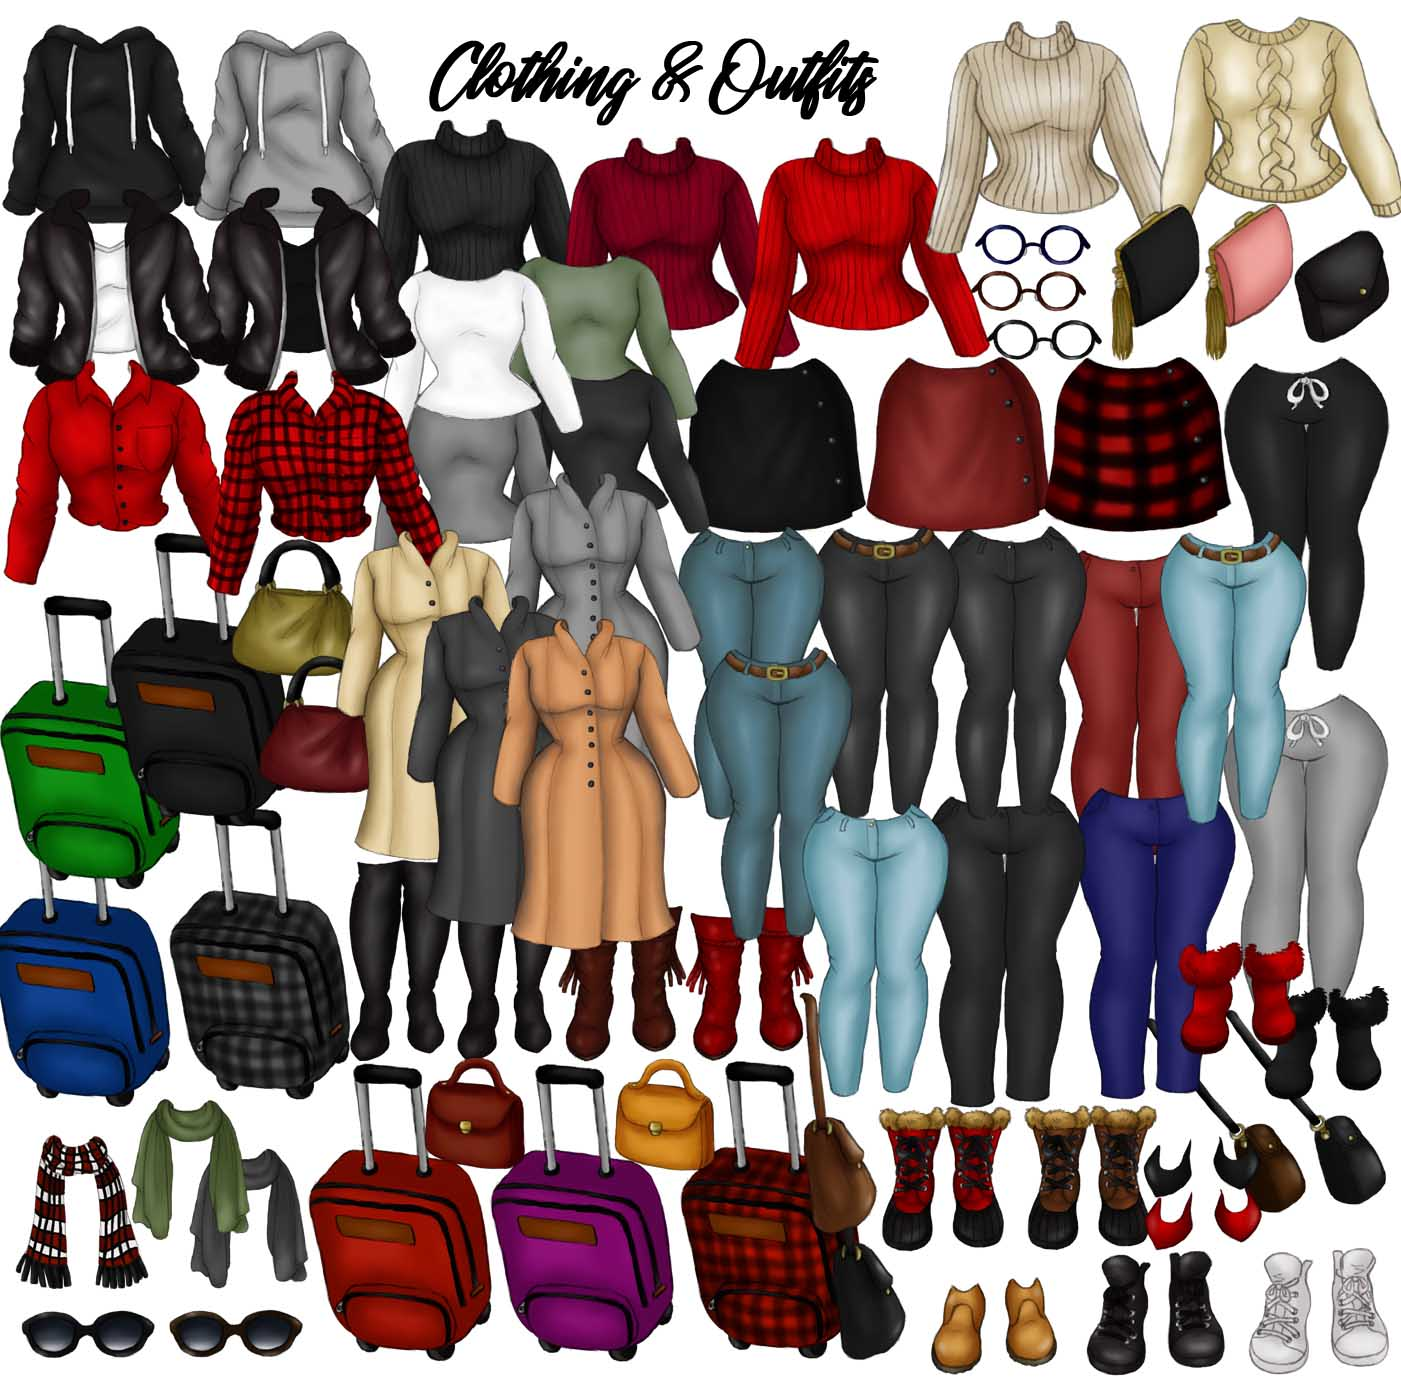 Winter Fashion &Travel Clipart DIY Customizable Paper Dolls example image 3